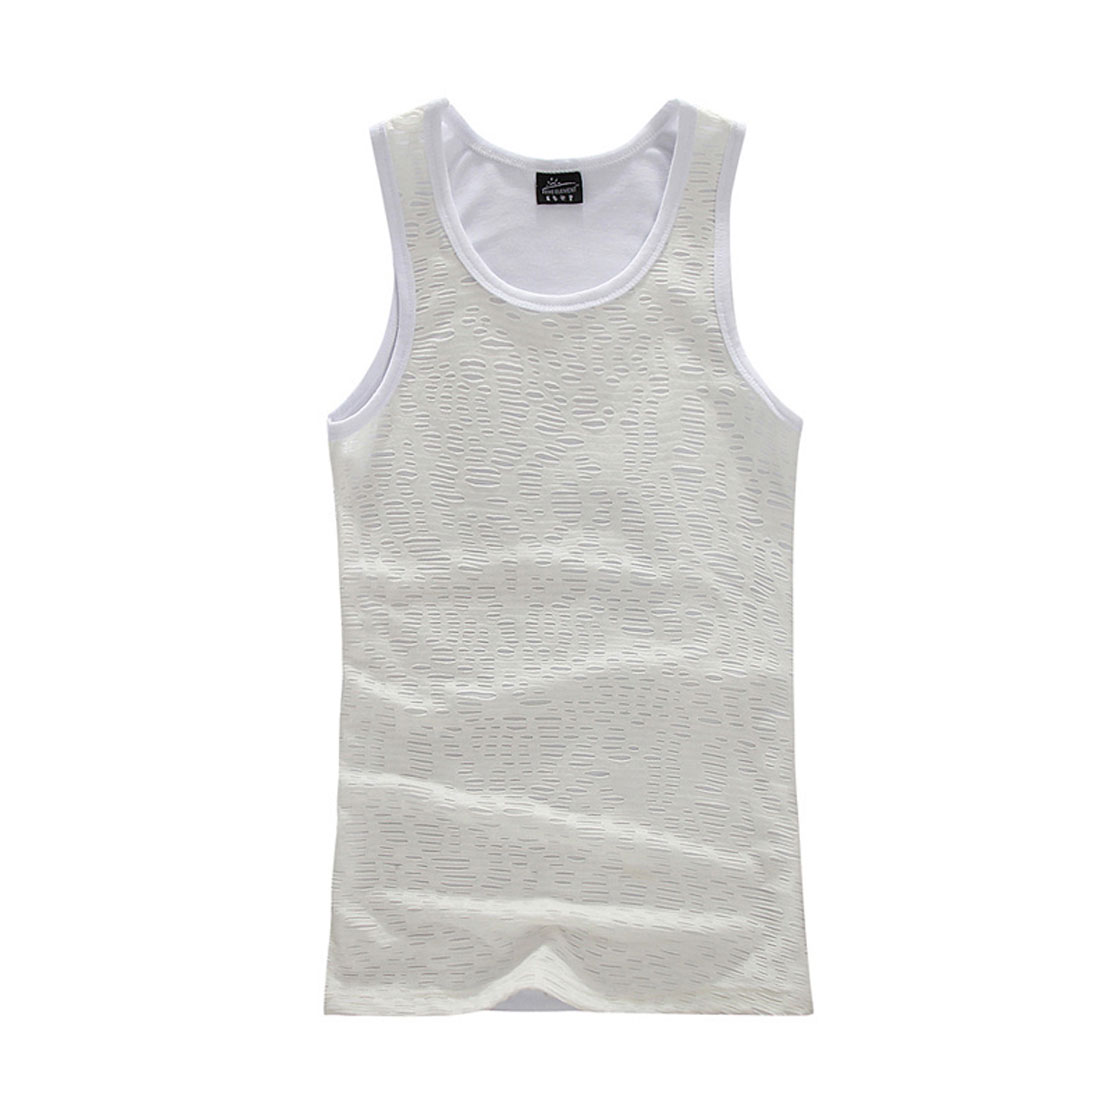 Men T-Shirt Semi Sheer Round Hem U Neck Form-fitting S White Tank Top